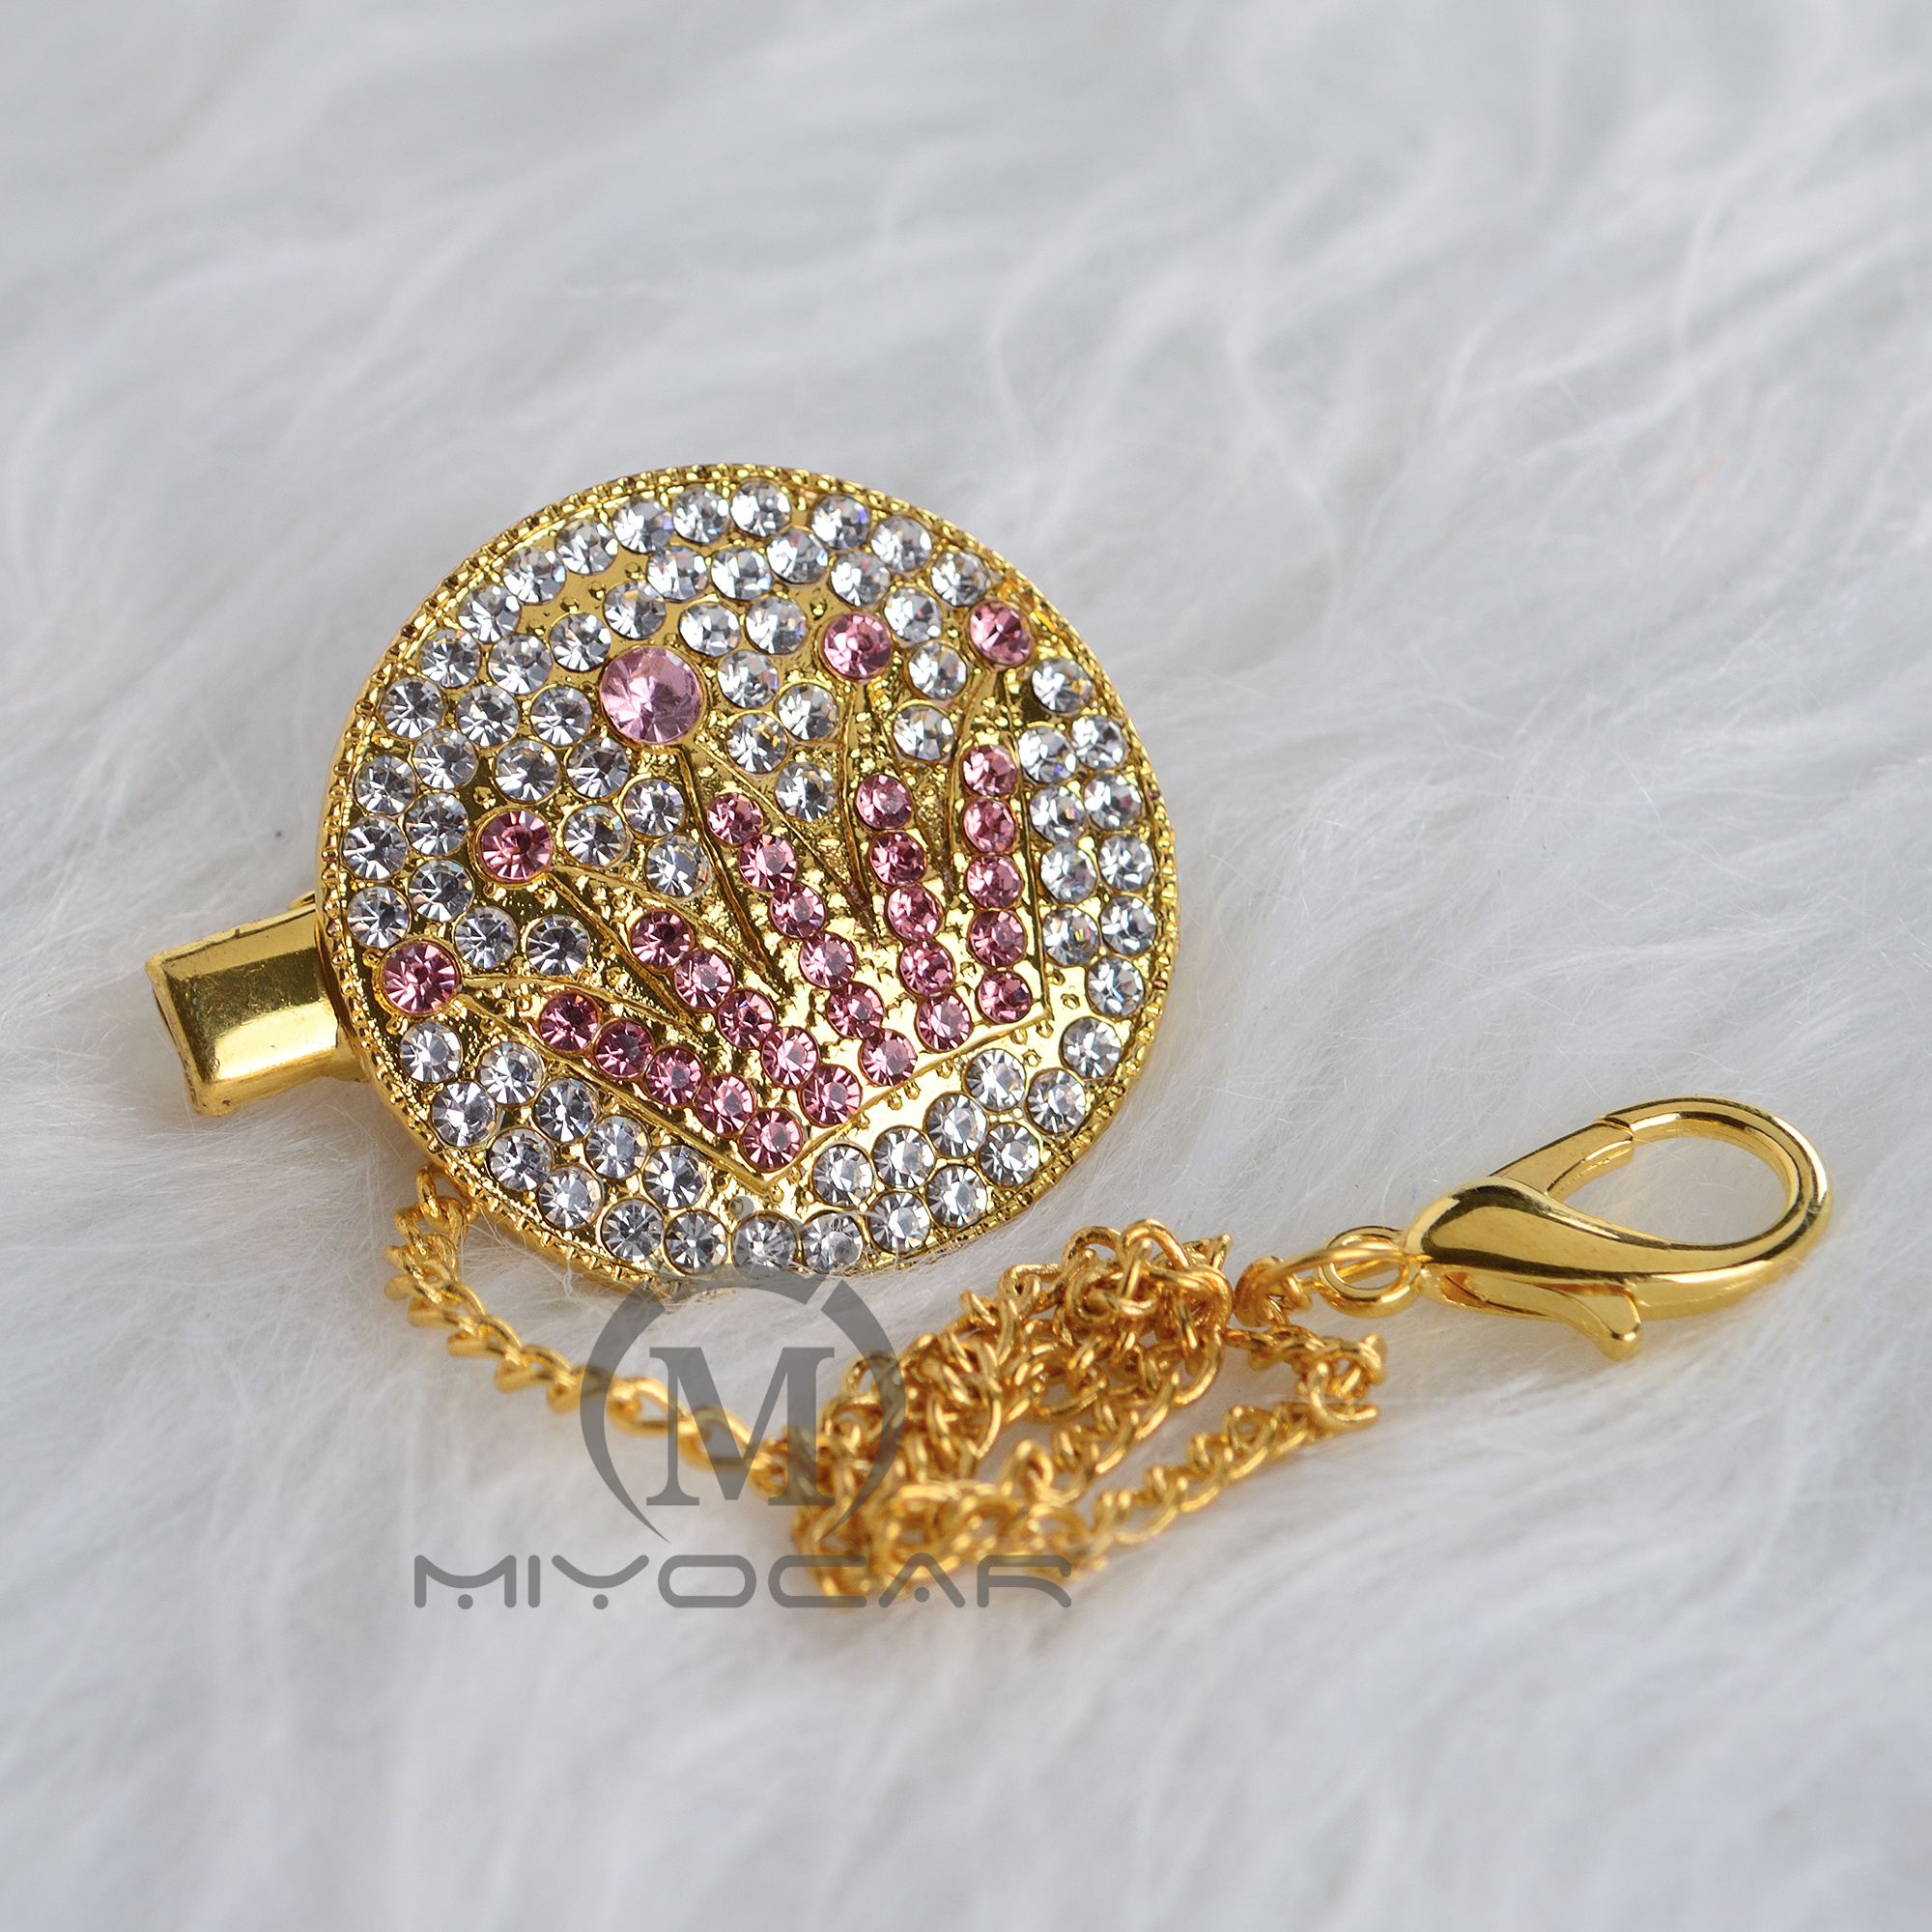 MIYOCAR blingbling pink crown pacifier clip holder dummy BPA free all mental chain made safe CH-1